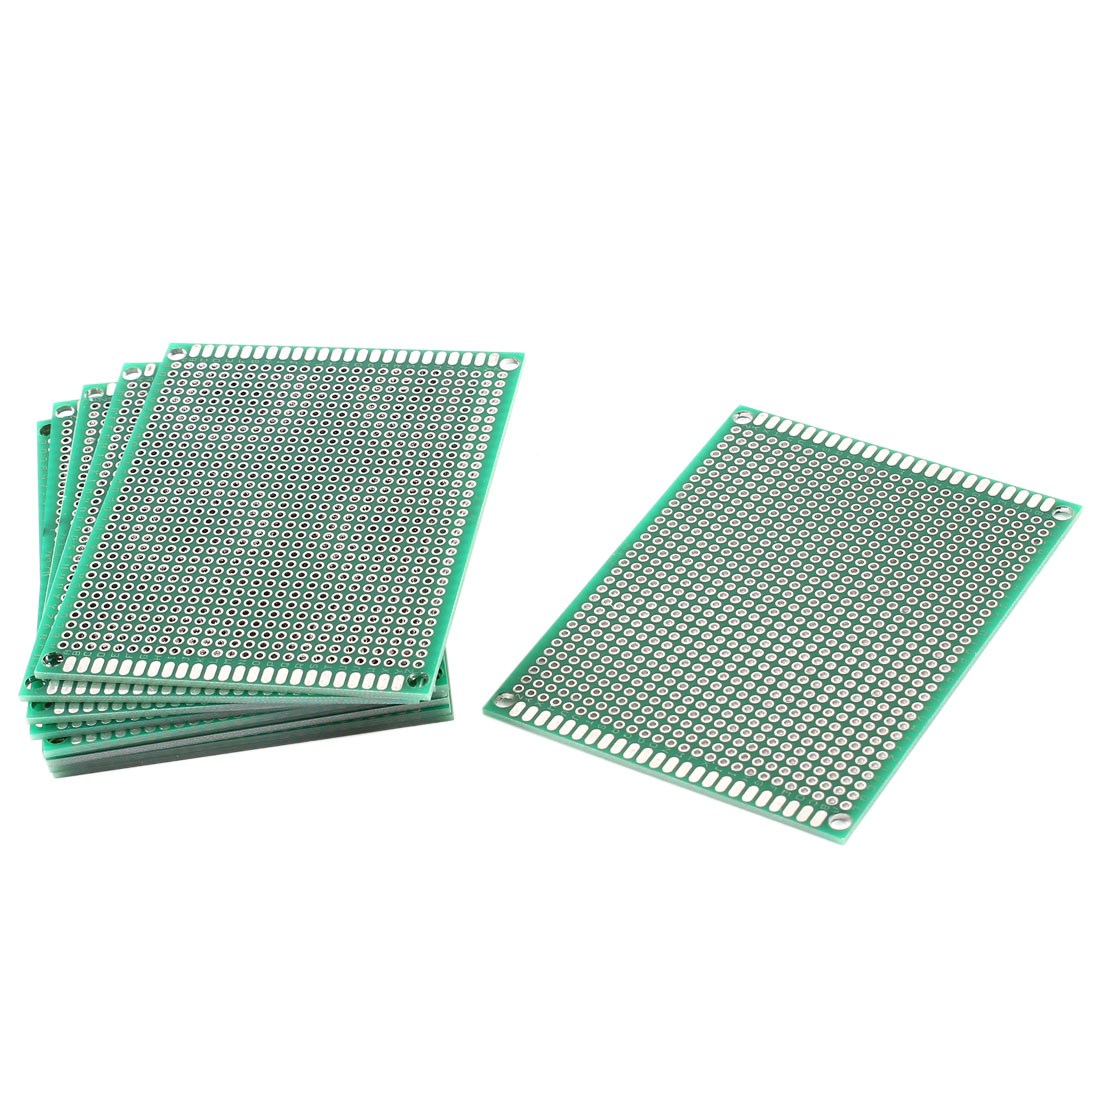 10 Pcs Dual Sided 2.54mm Pitch Tinned Prototyping PCB Universal Board 70mmx90mm